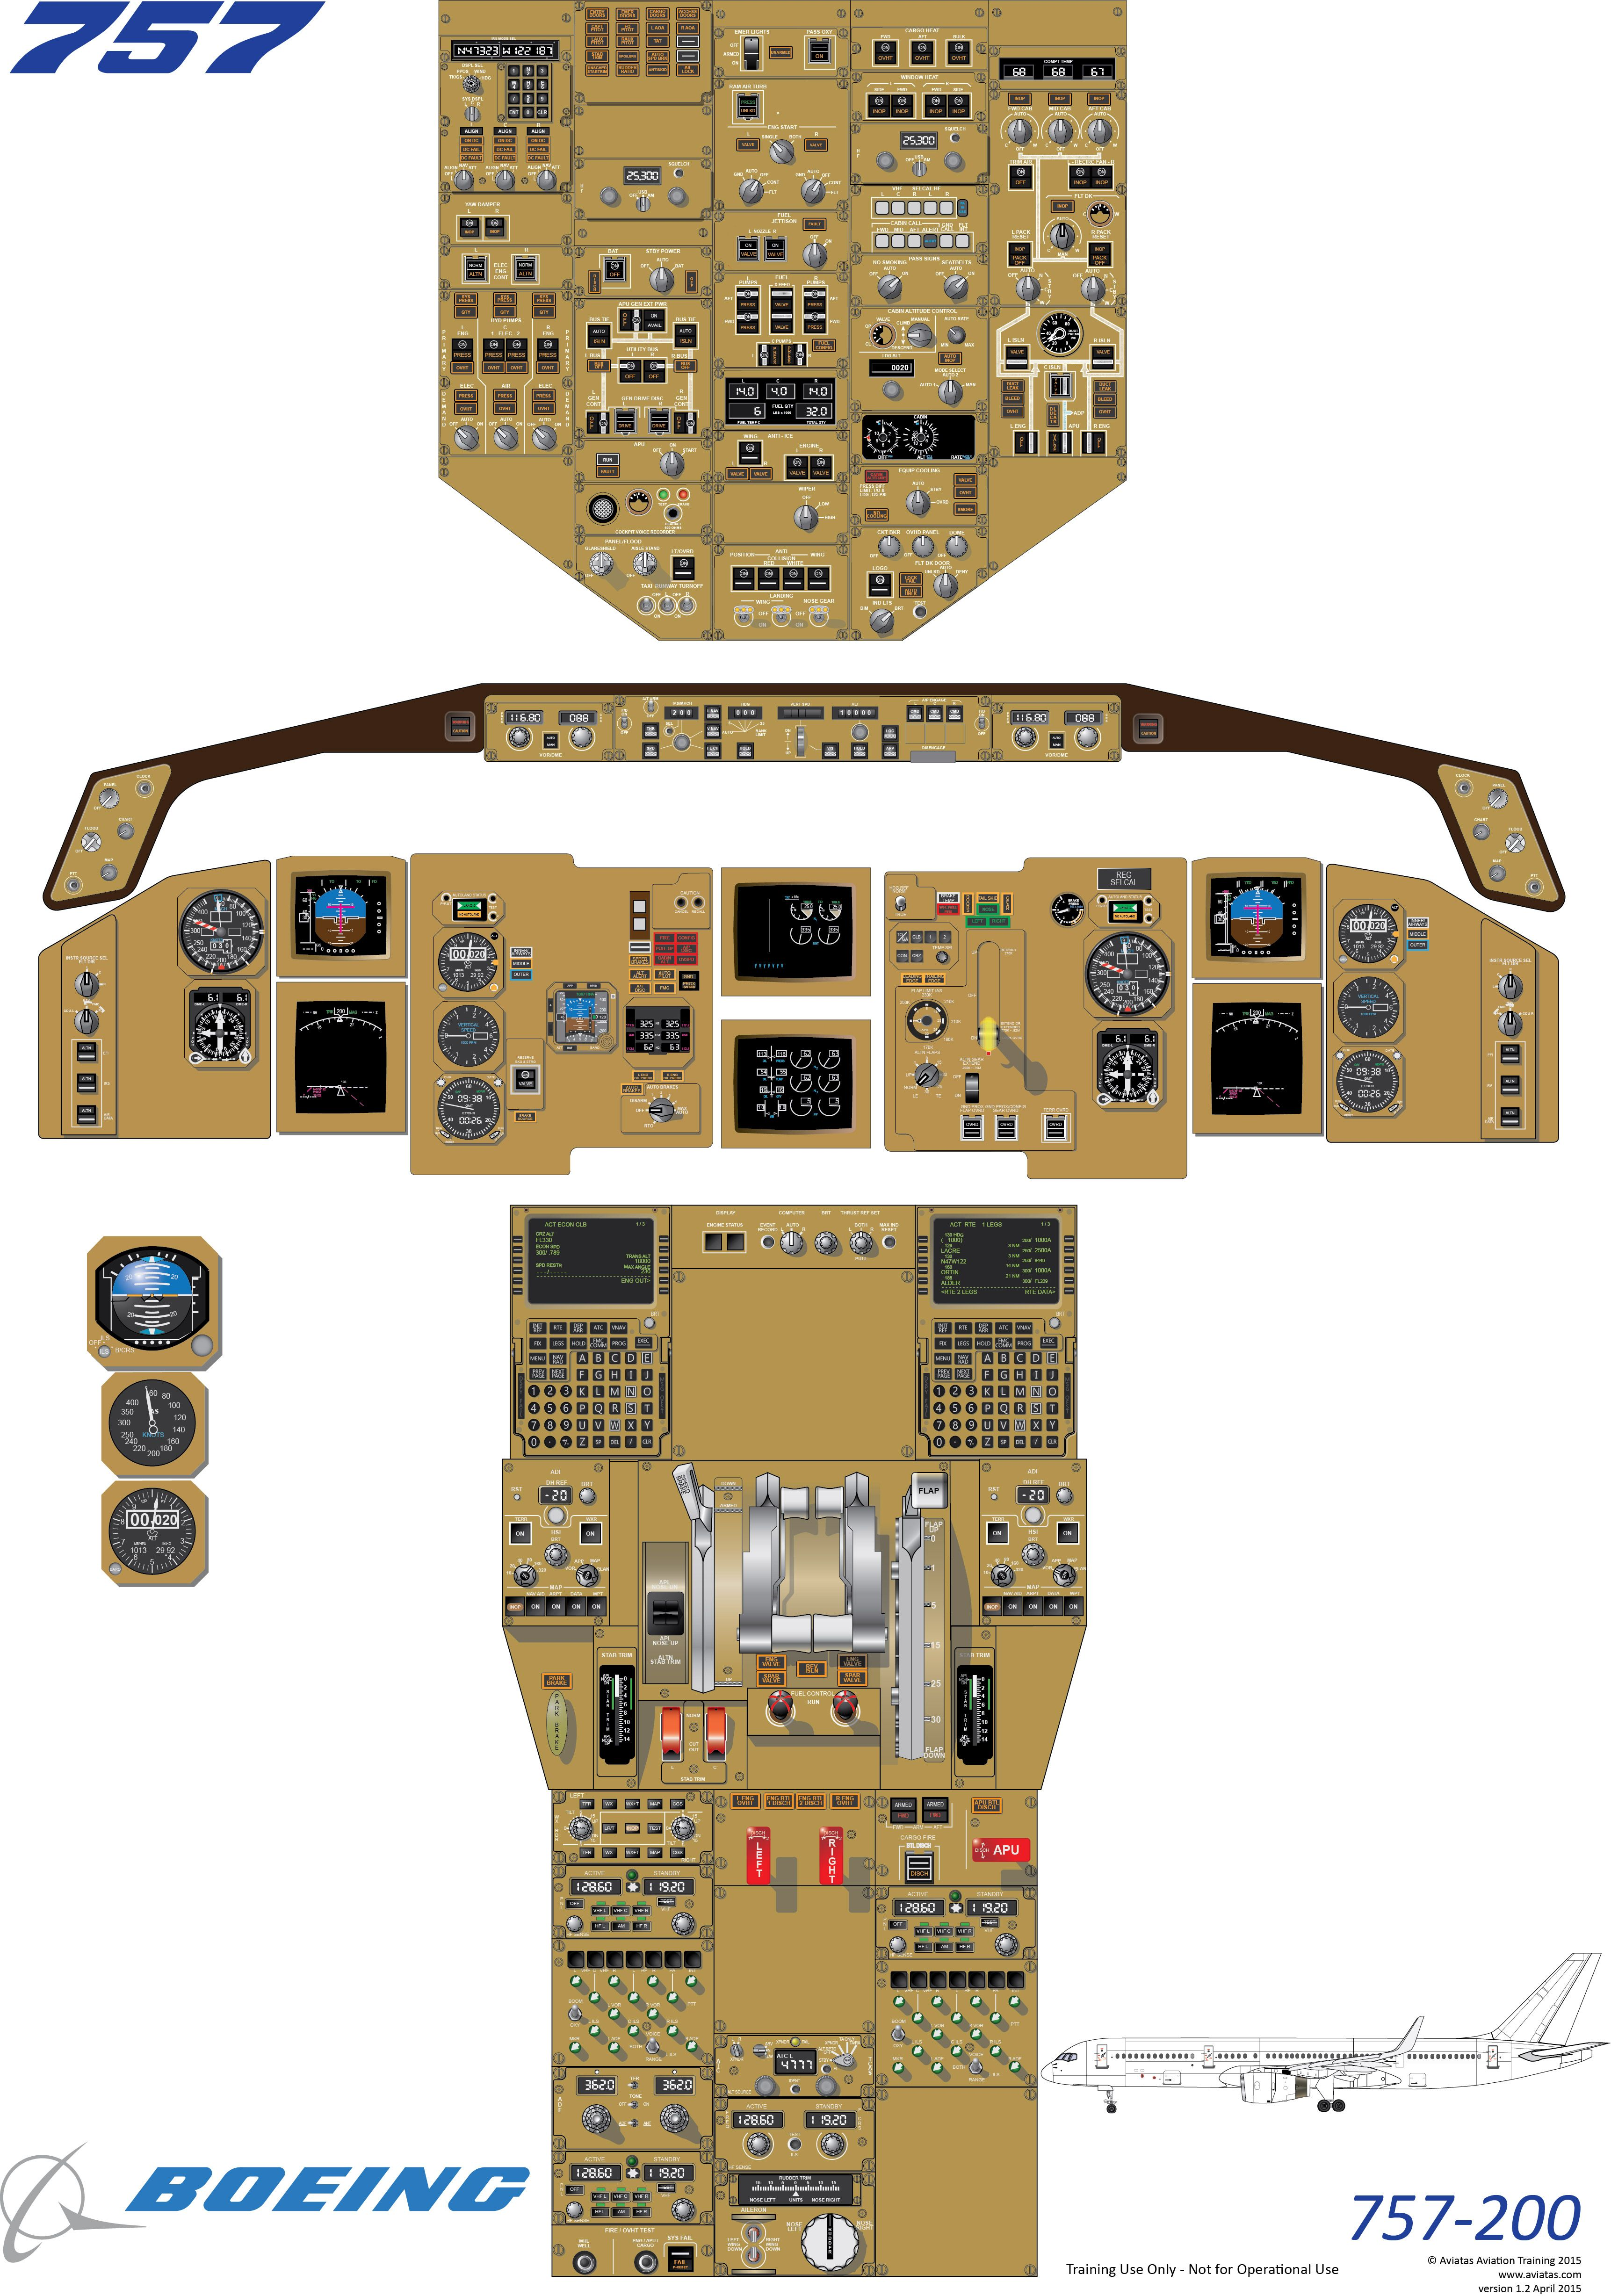 Boeing 757 200 Cockpit Training Diagram Used For Training Pilots Flight Simulator Cockpit Boeing 767 Cockpit